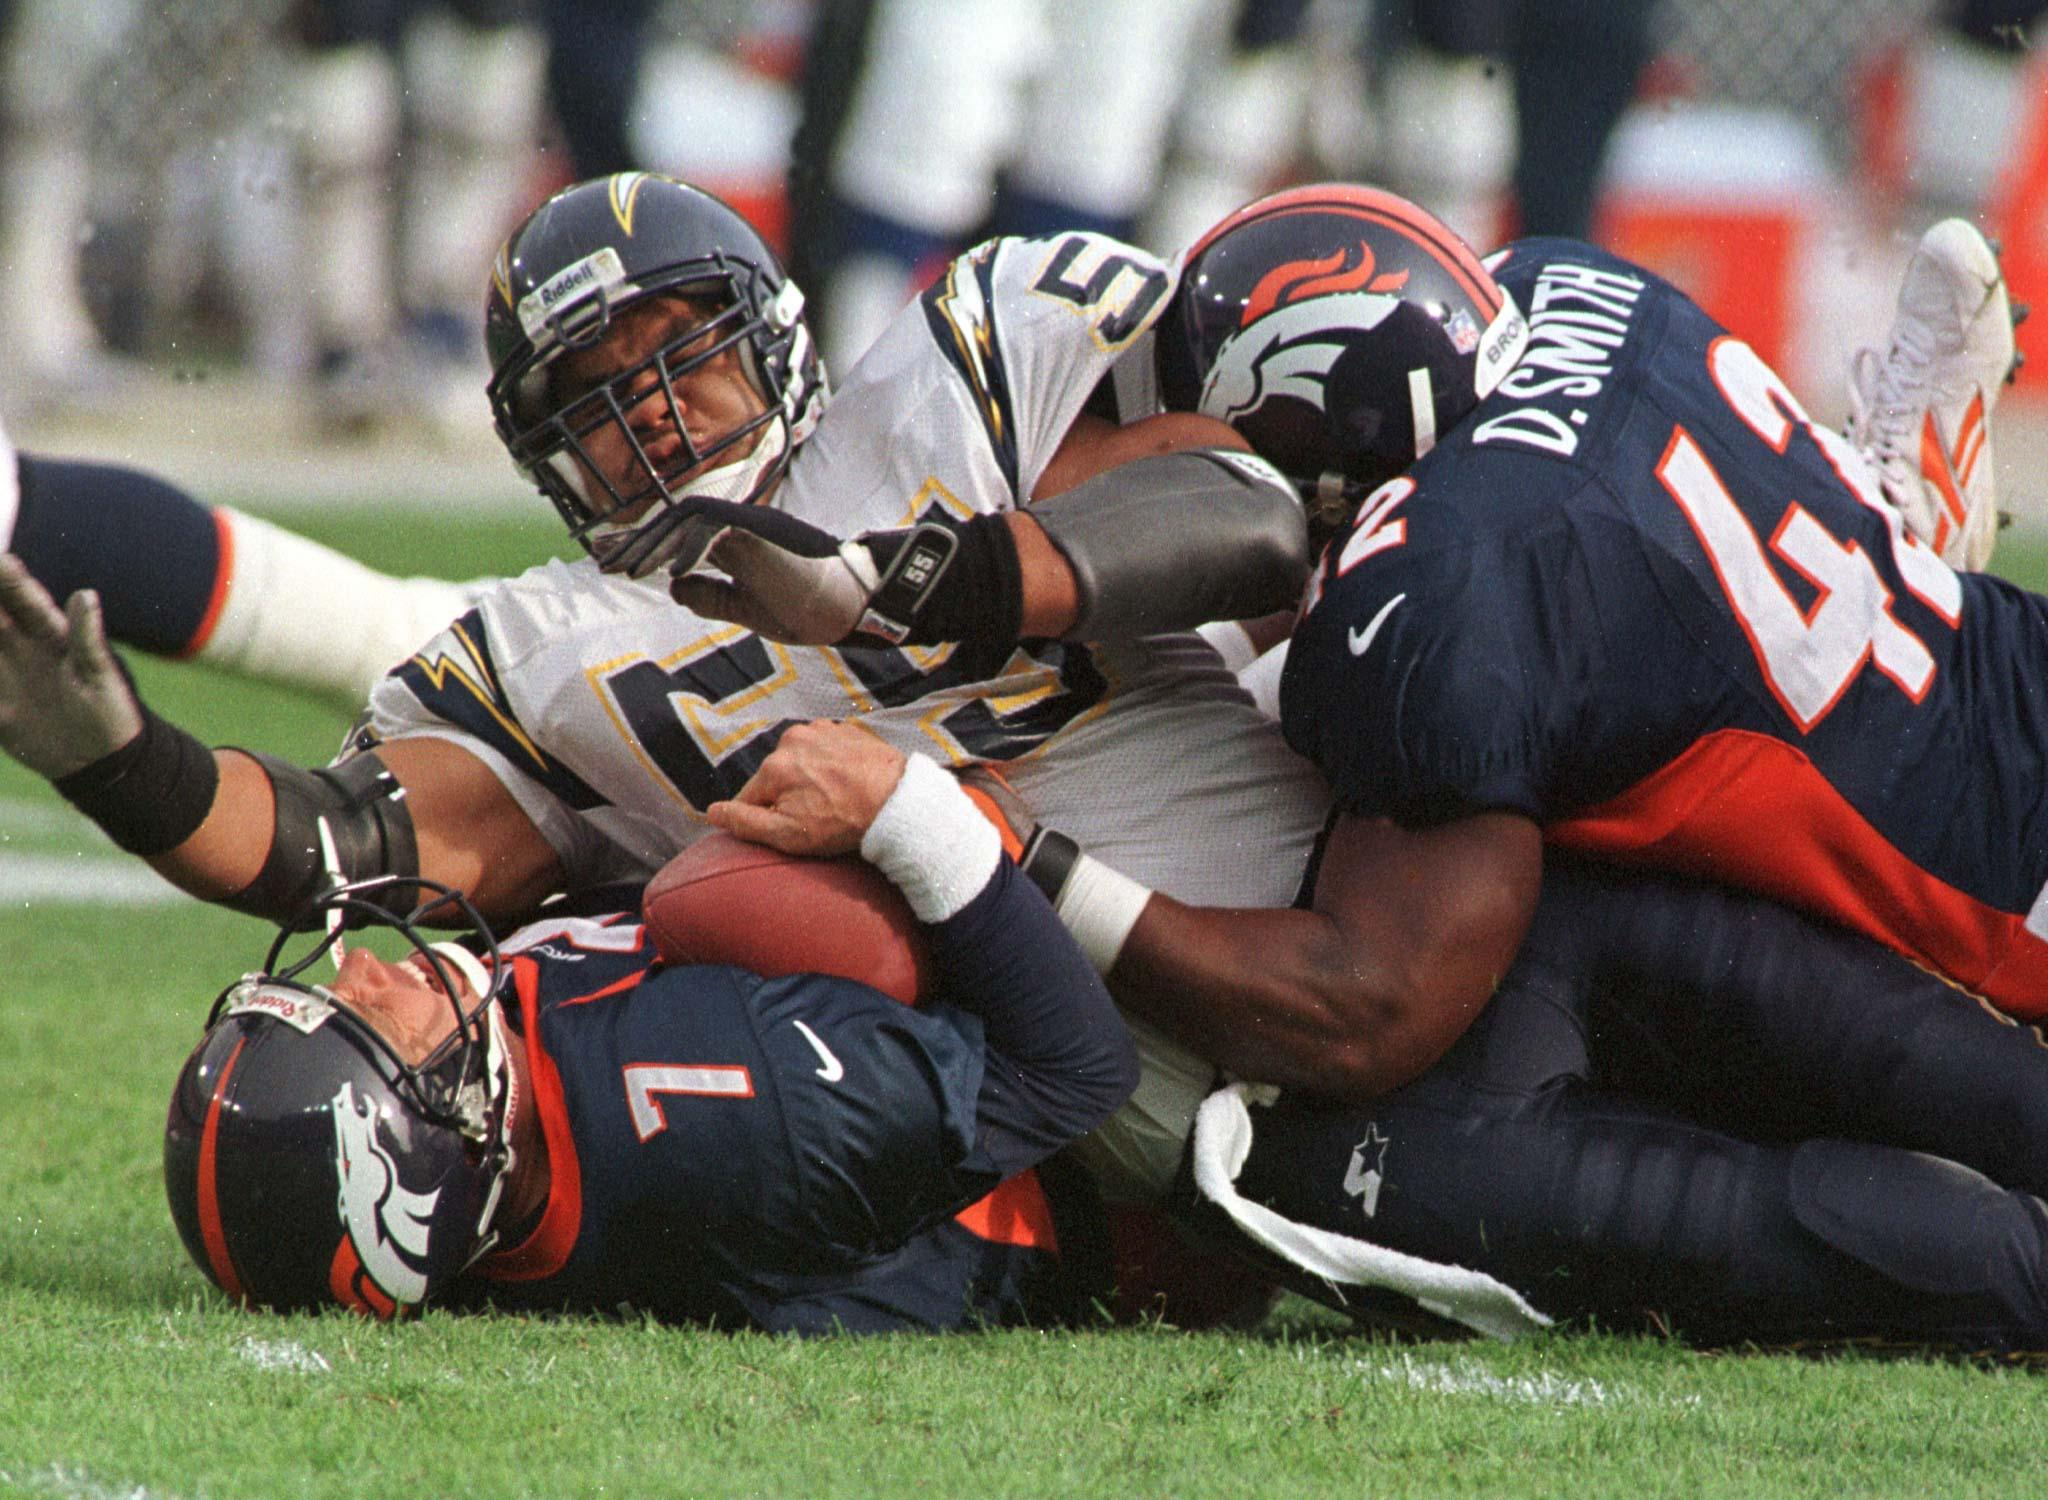 Junior Seau Chargers